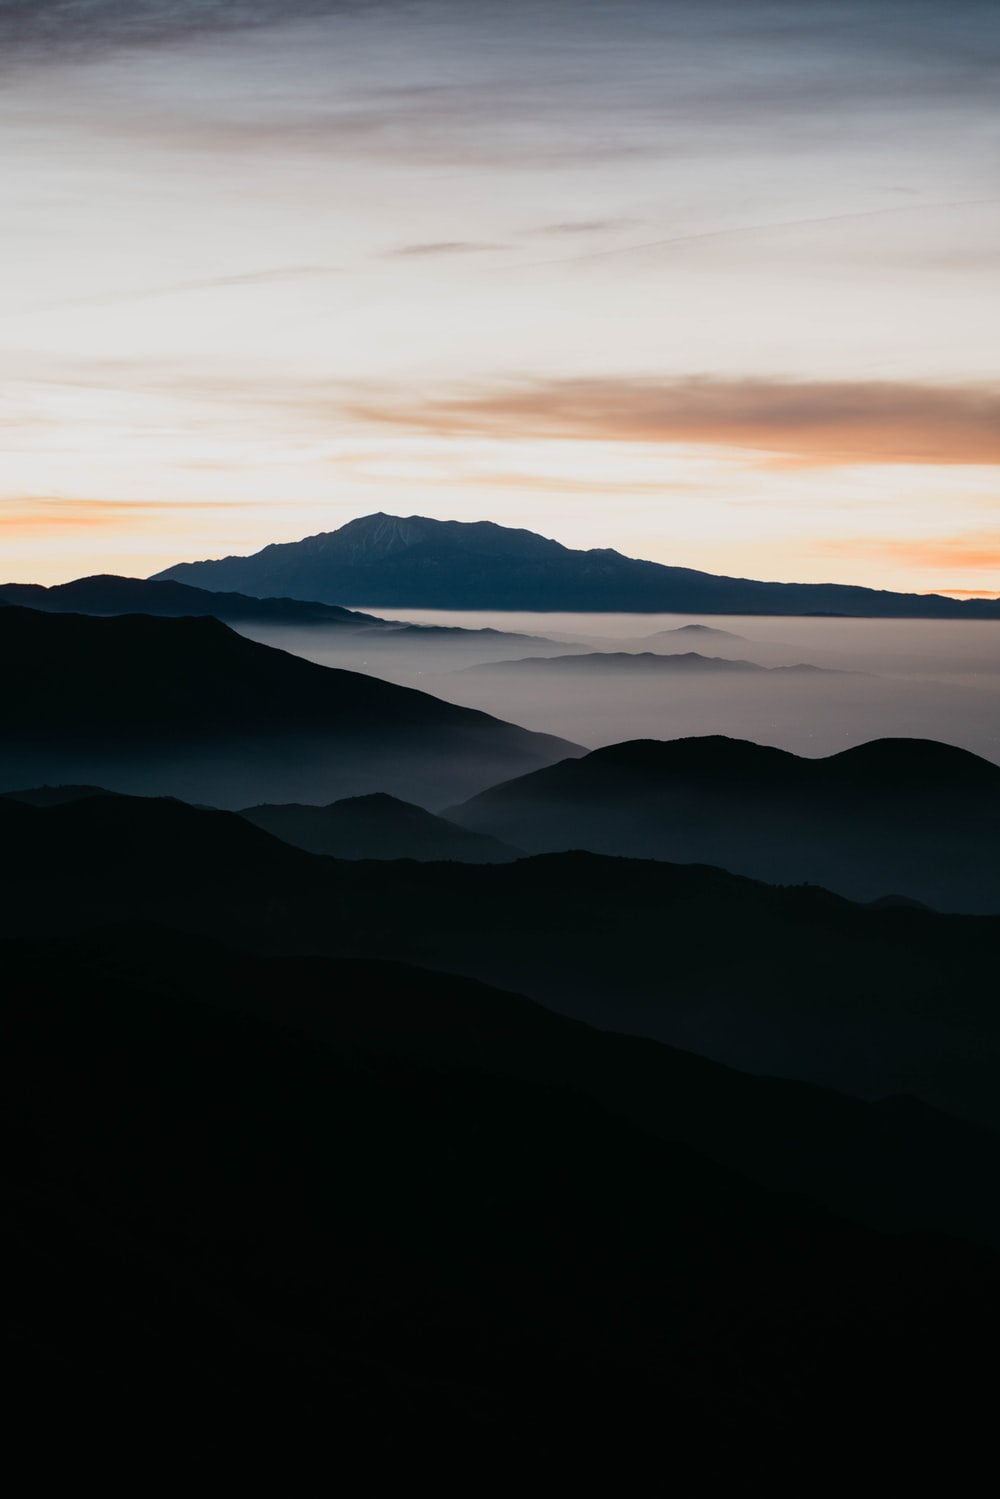 mountain filled with mist